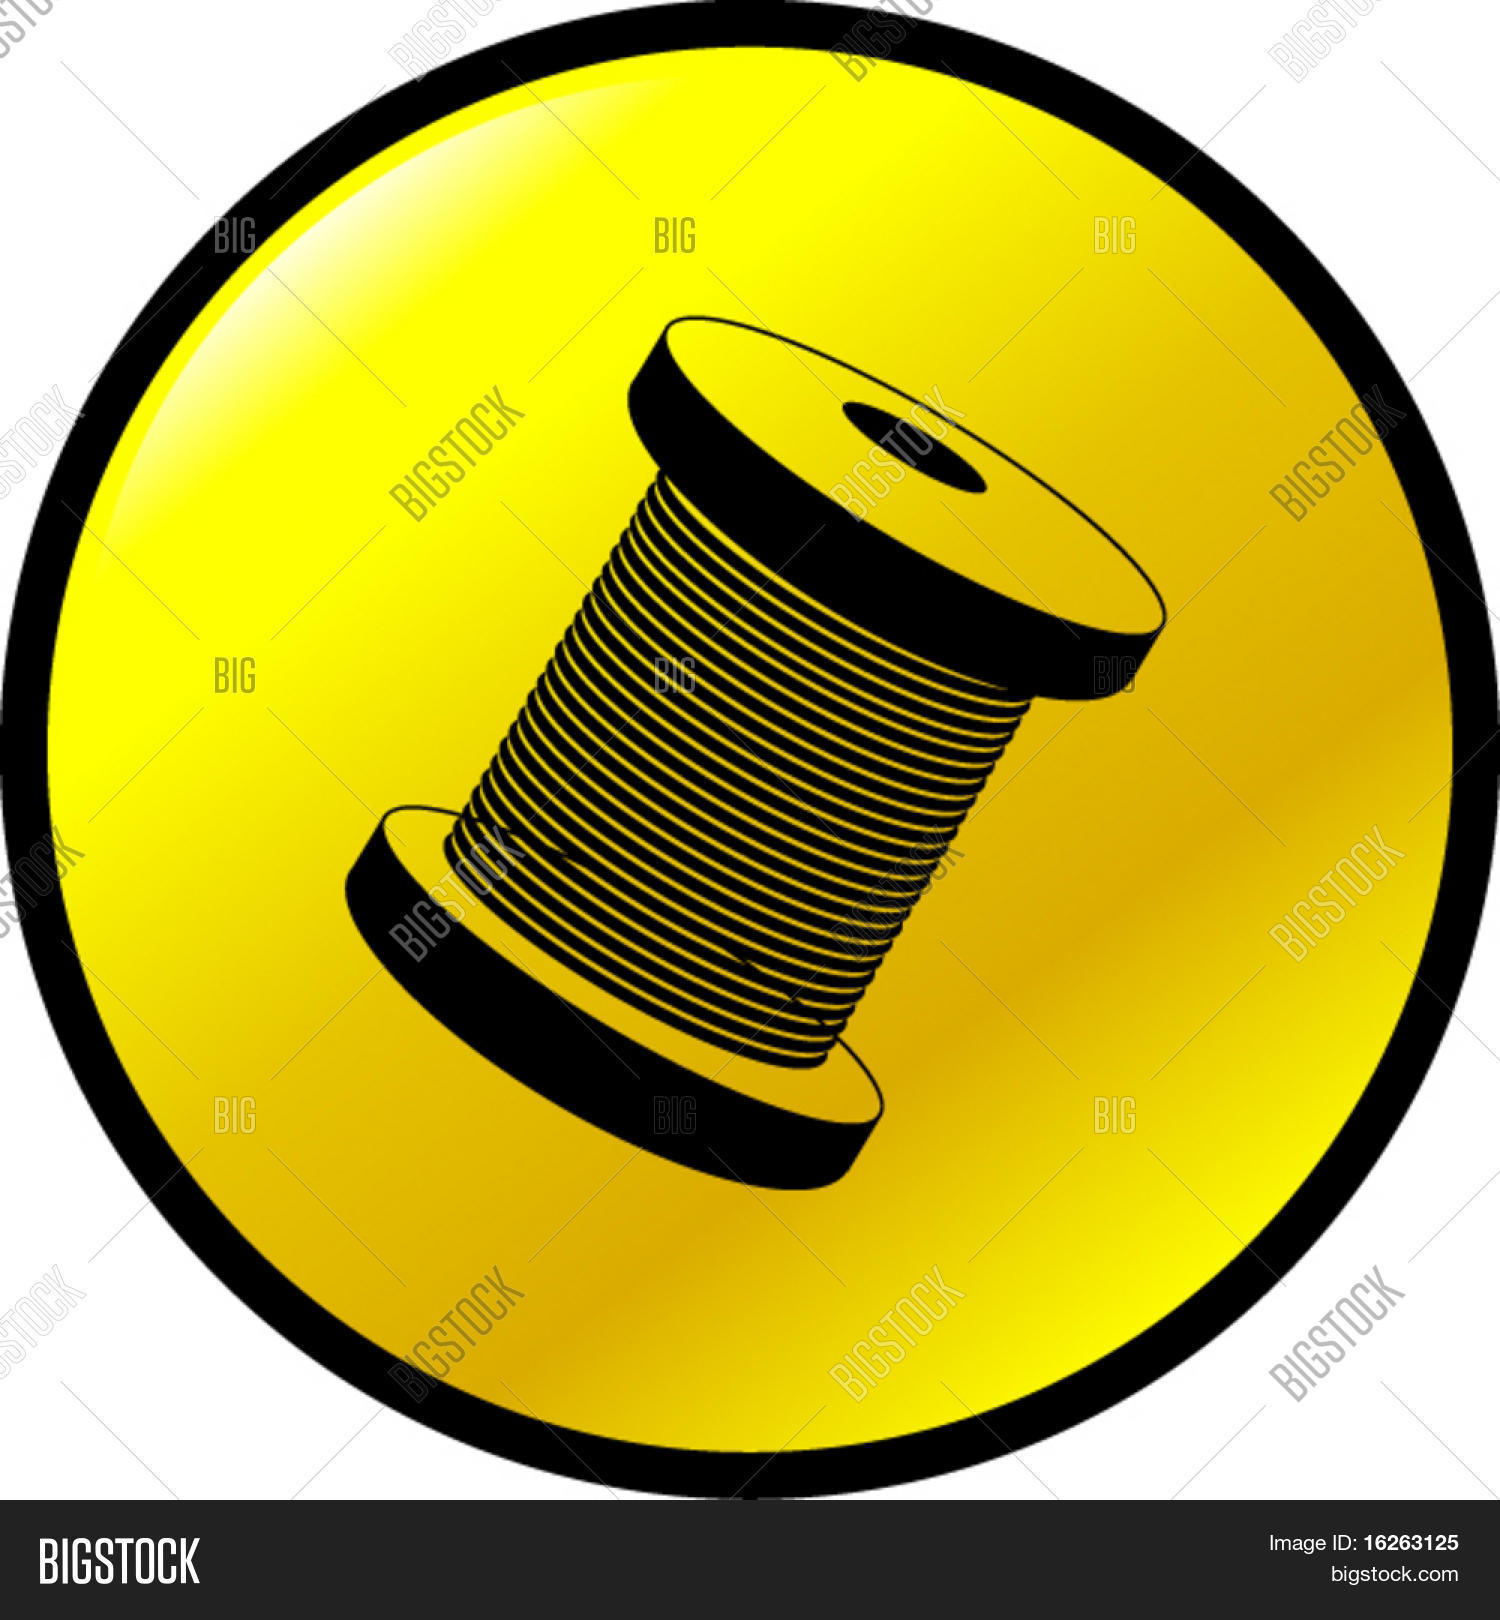 Thread Cable Spool Vector & Photo (Free Trial) | Bigstock